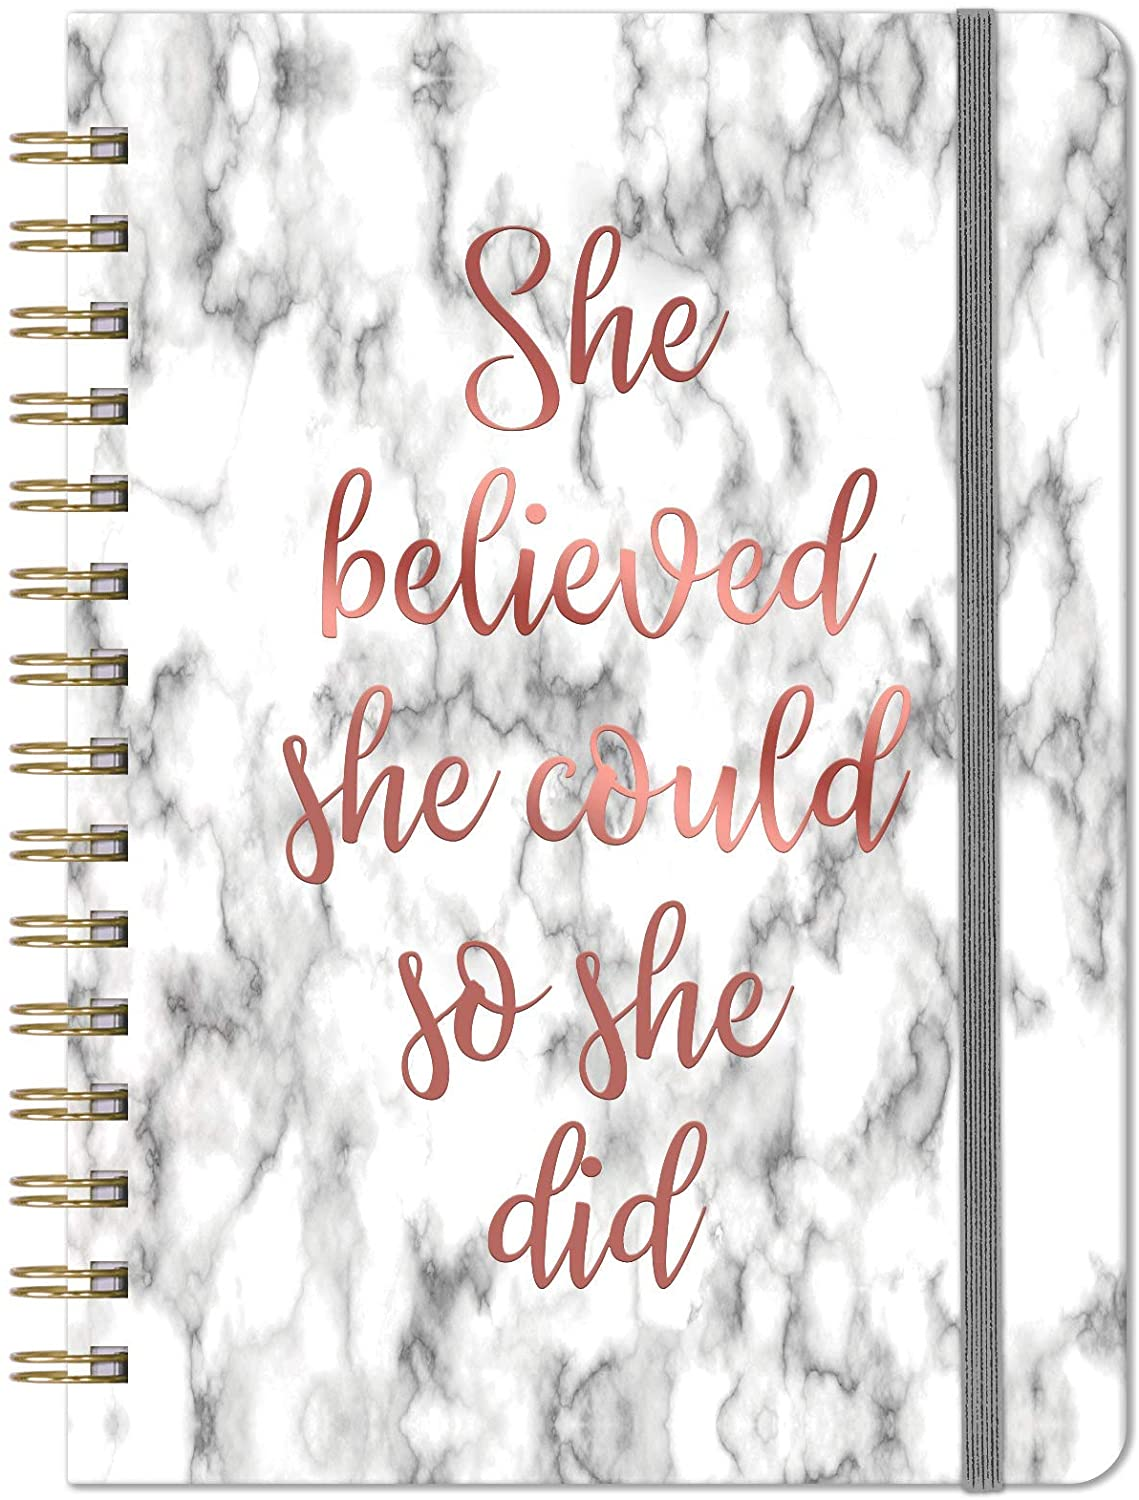 Ruled Sales for sale Notebook Journal - Philadelphia Mall Lined Premium Paper Thick with